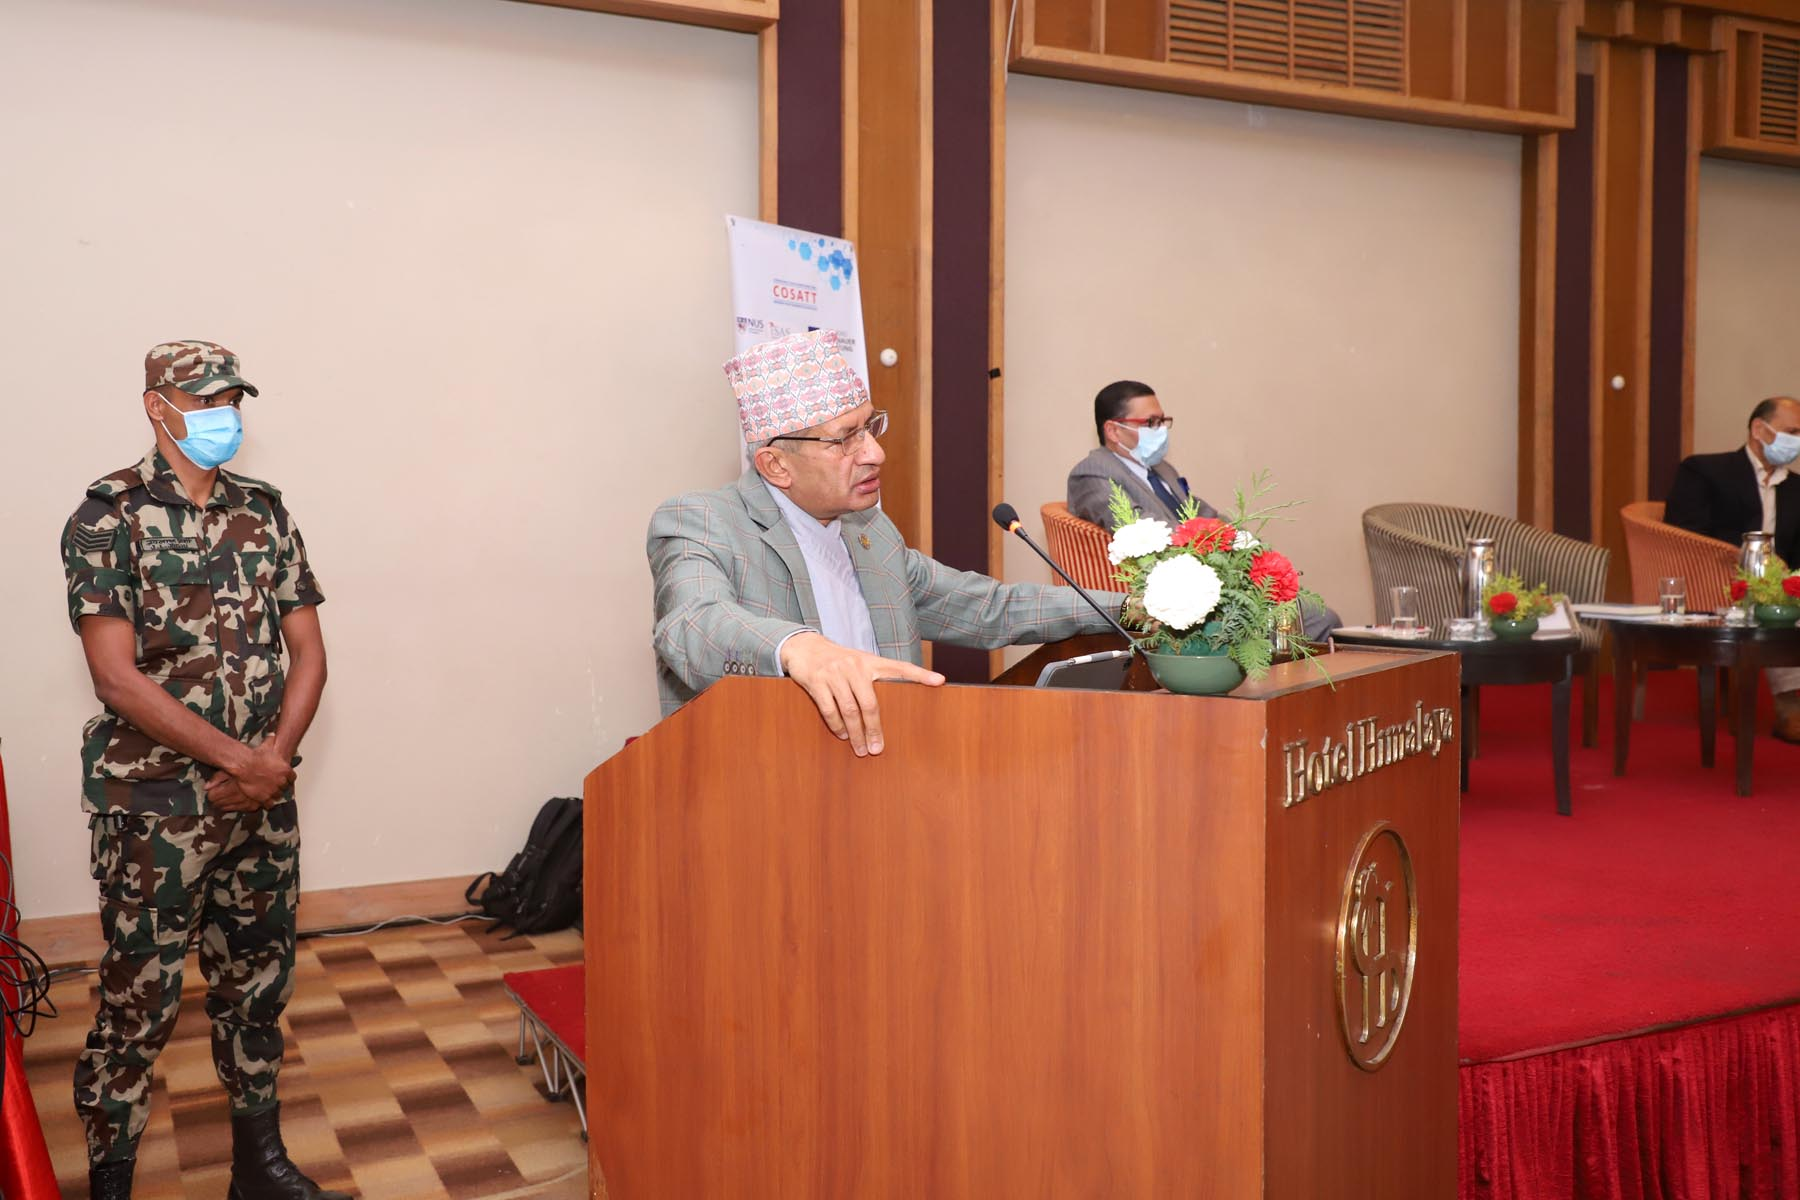 National workshop on 'Nepal's Contributions to UN Peacekeeping'